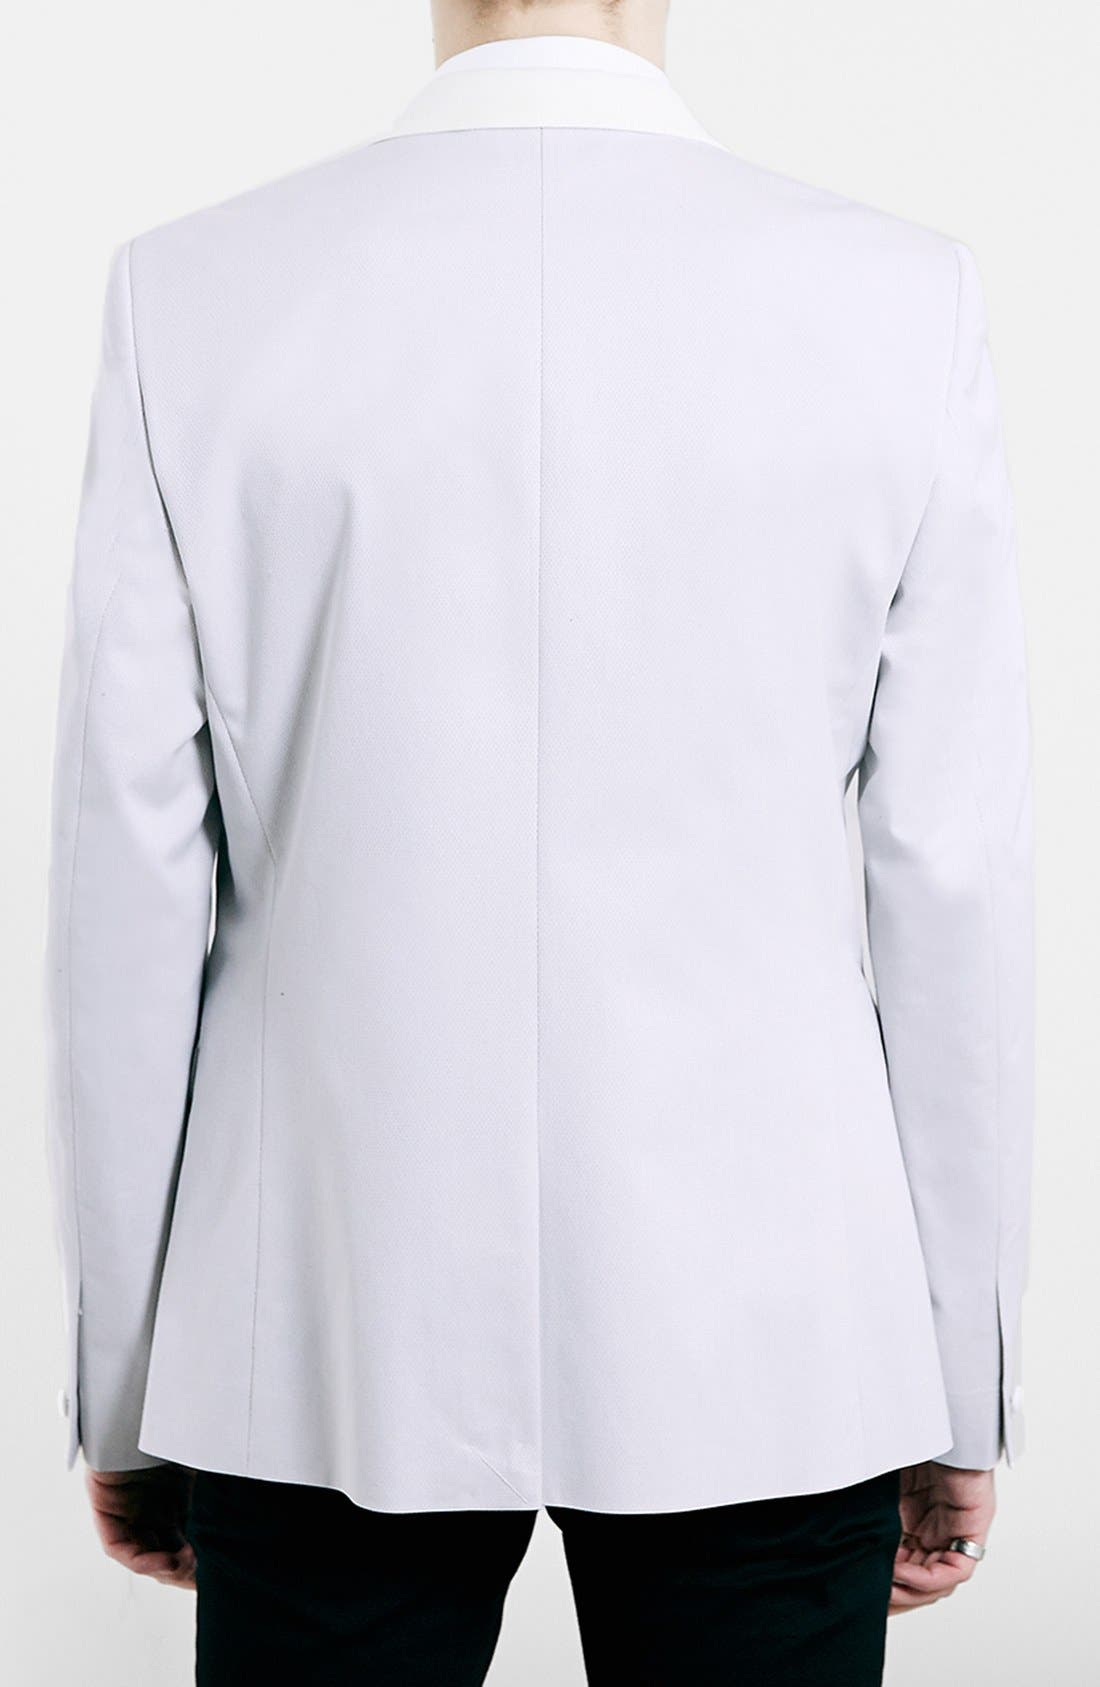 TOPMAN, Slim Fit Off White Tuxedo Jacket, Alternate thumbnail 5, color, 900